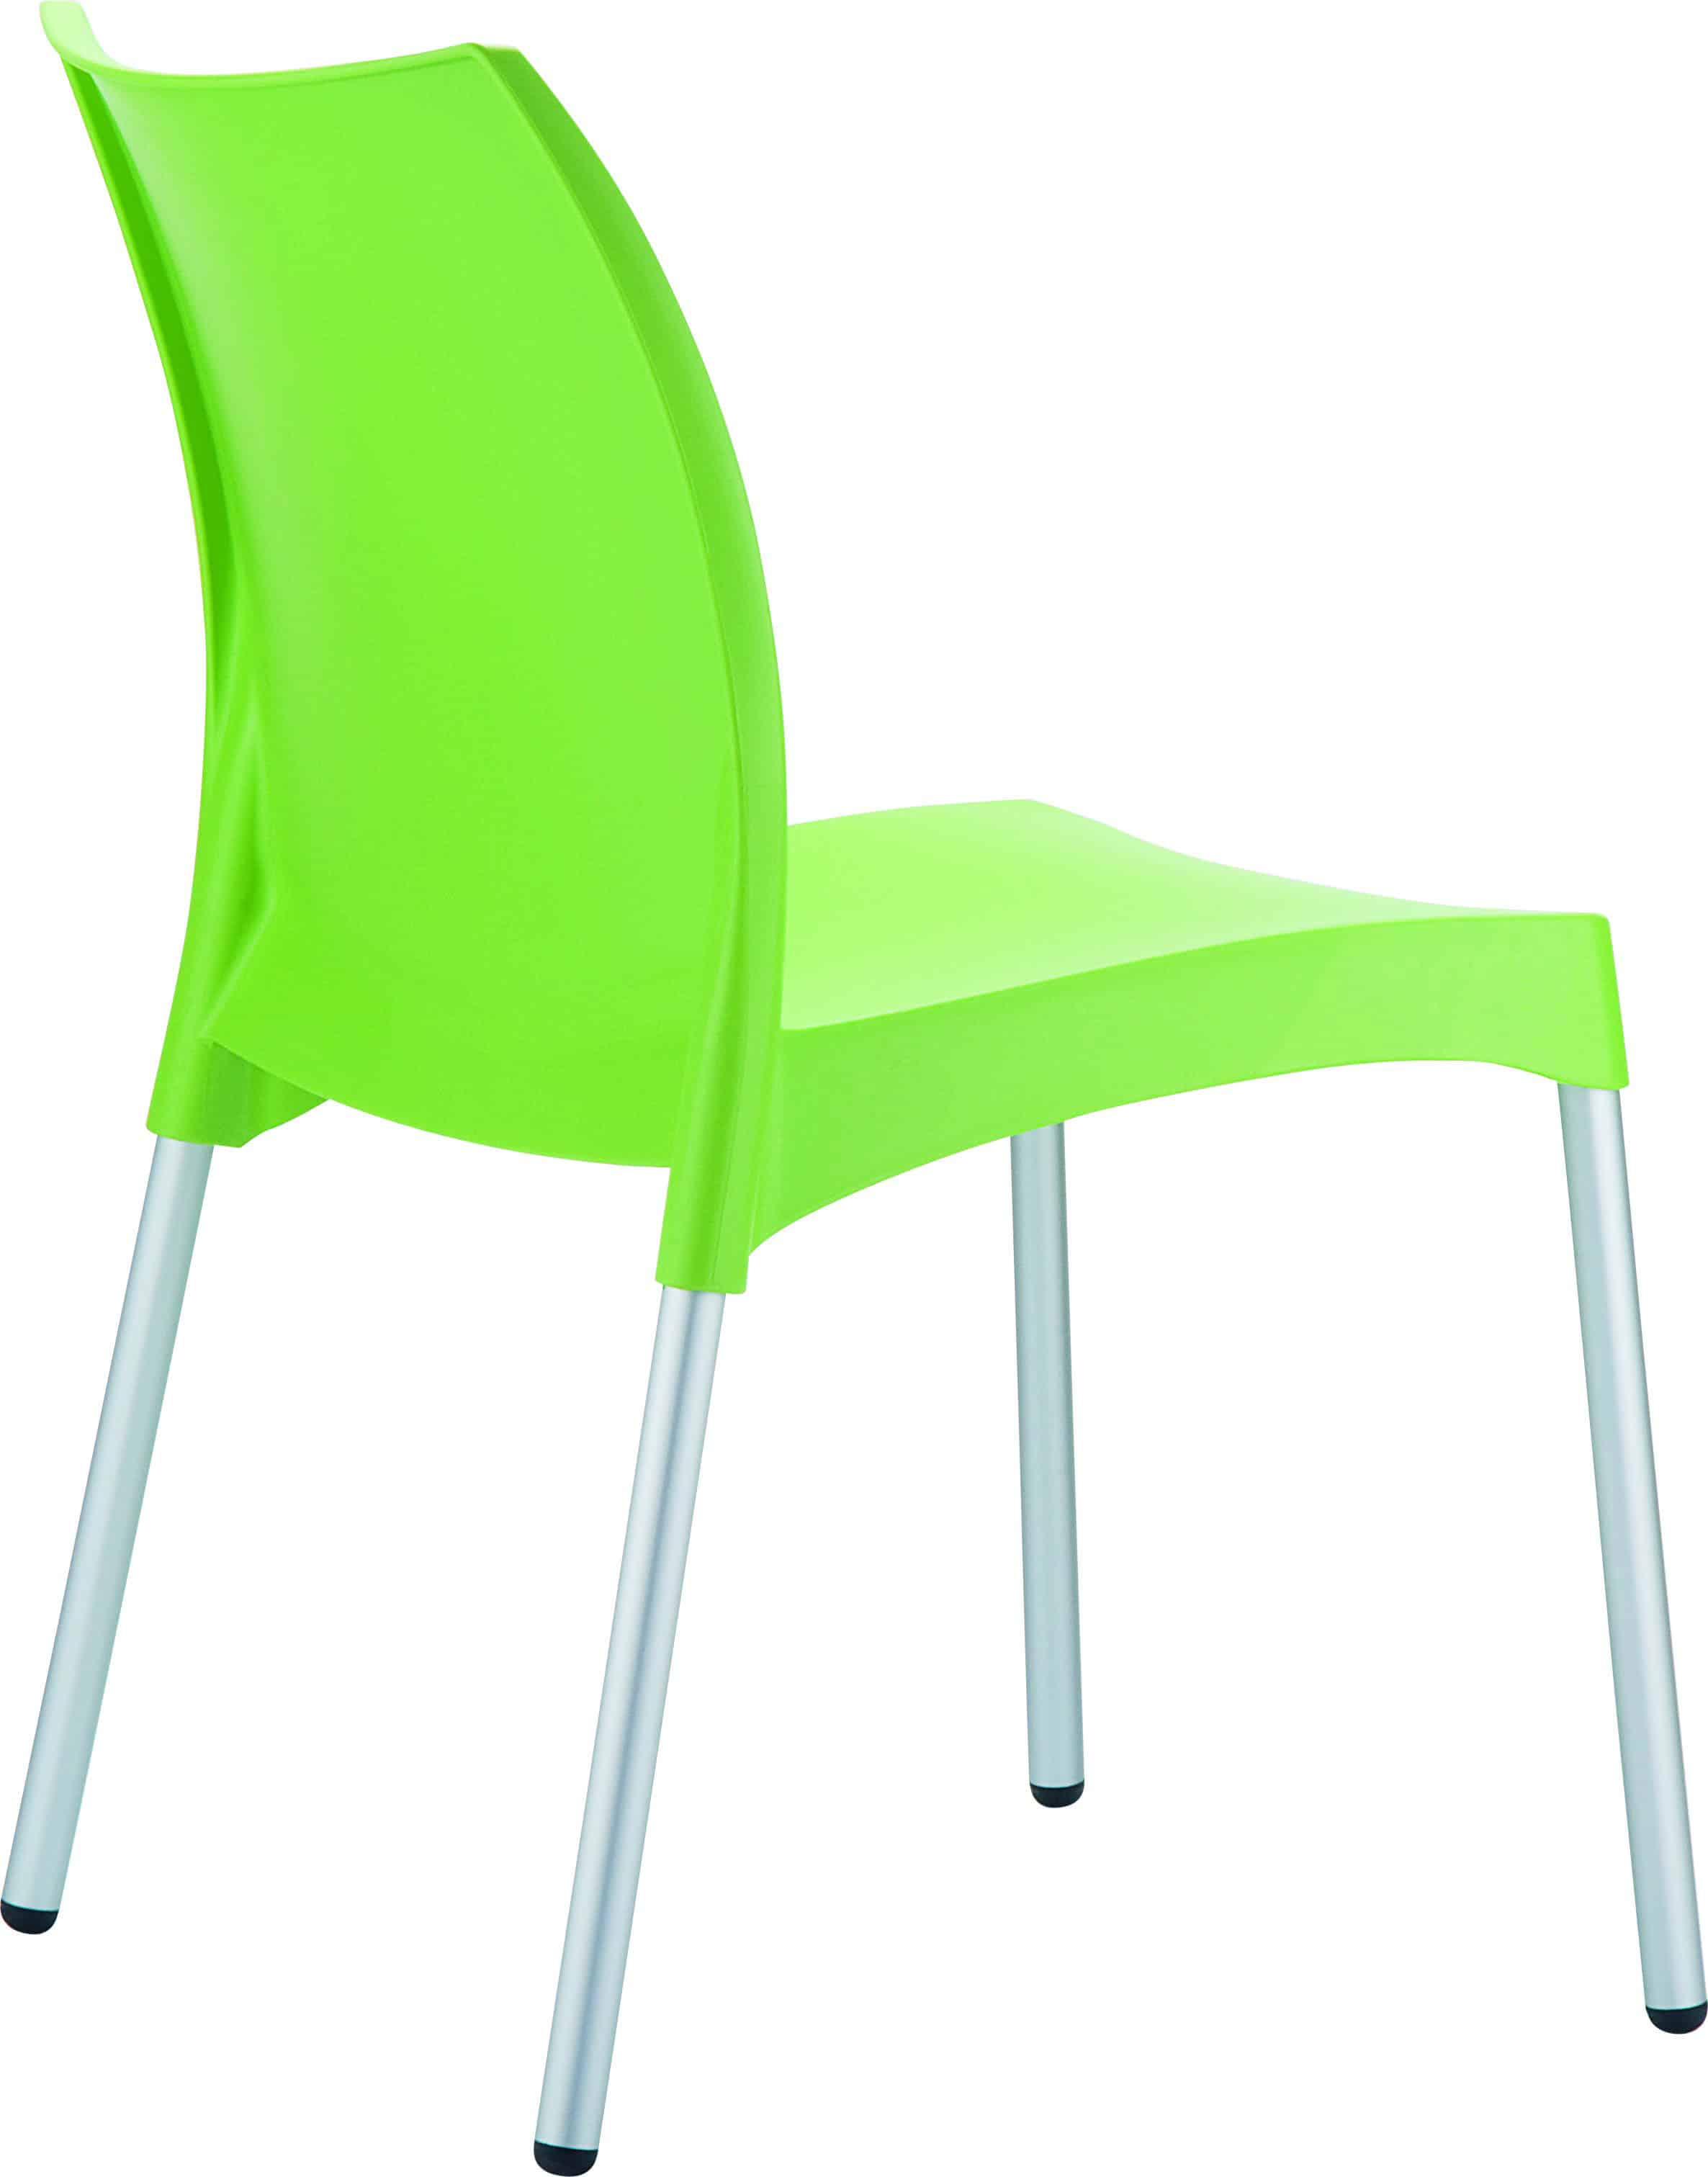 Neon Green Astray office chair